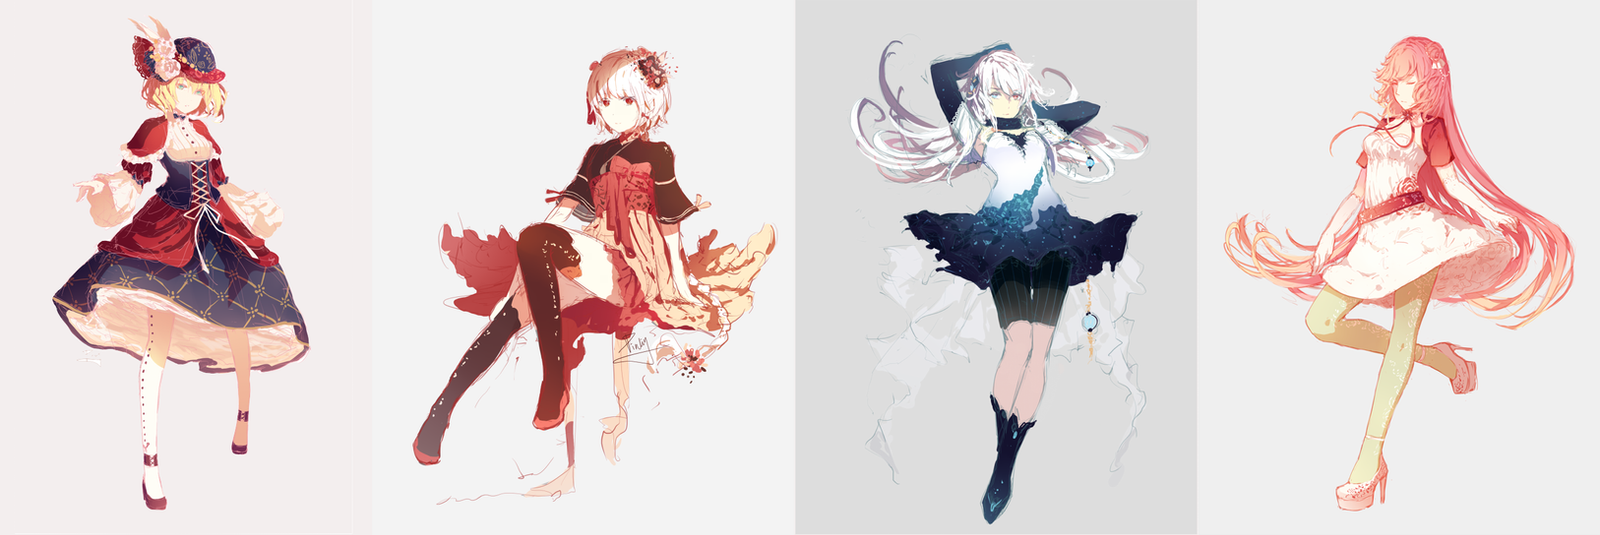 Character Design Personality : Female character designs by pinlin on deviantart